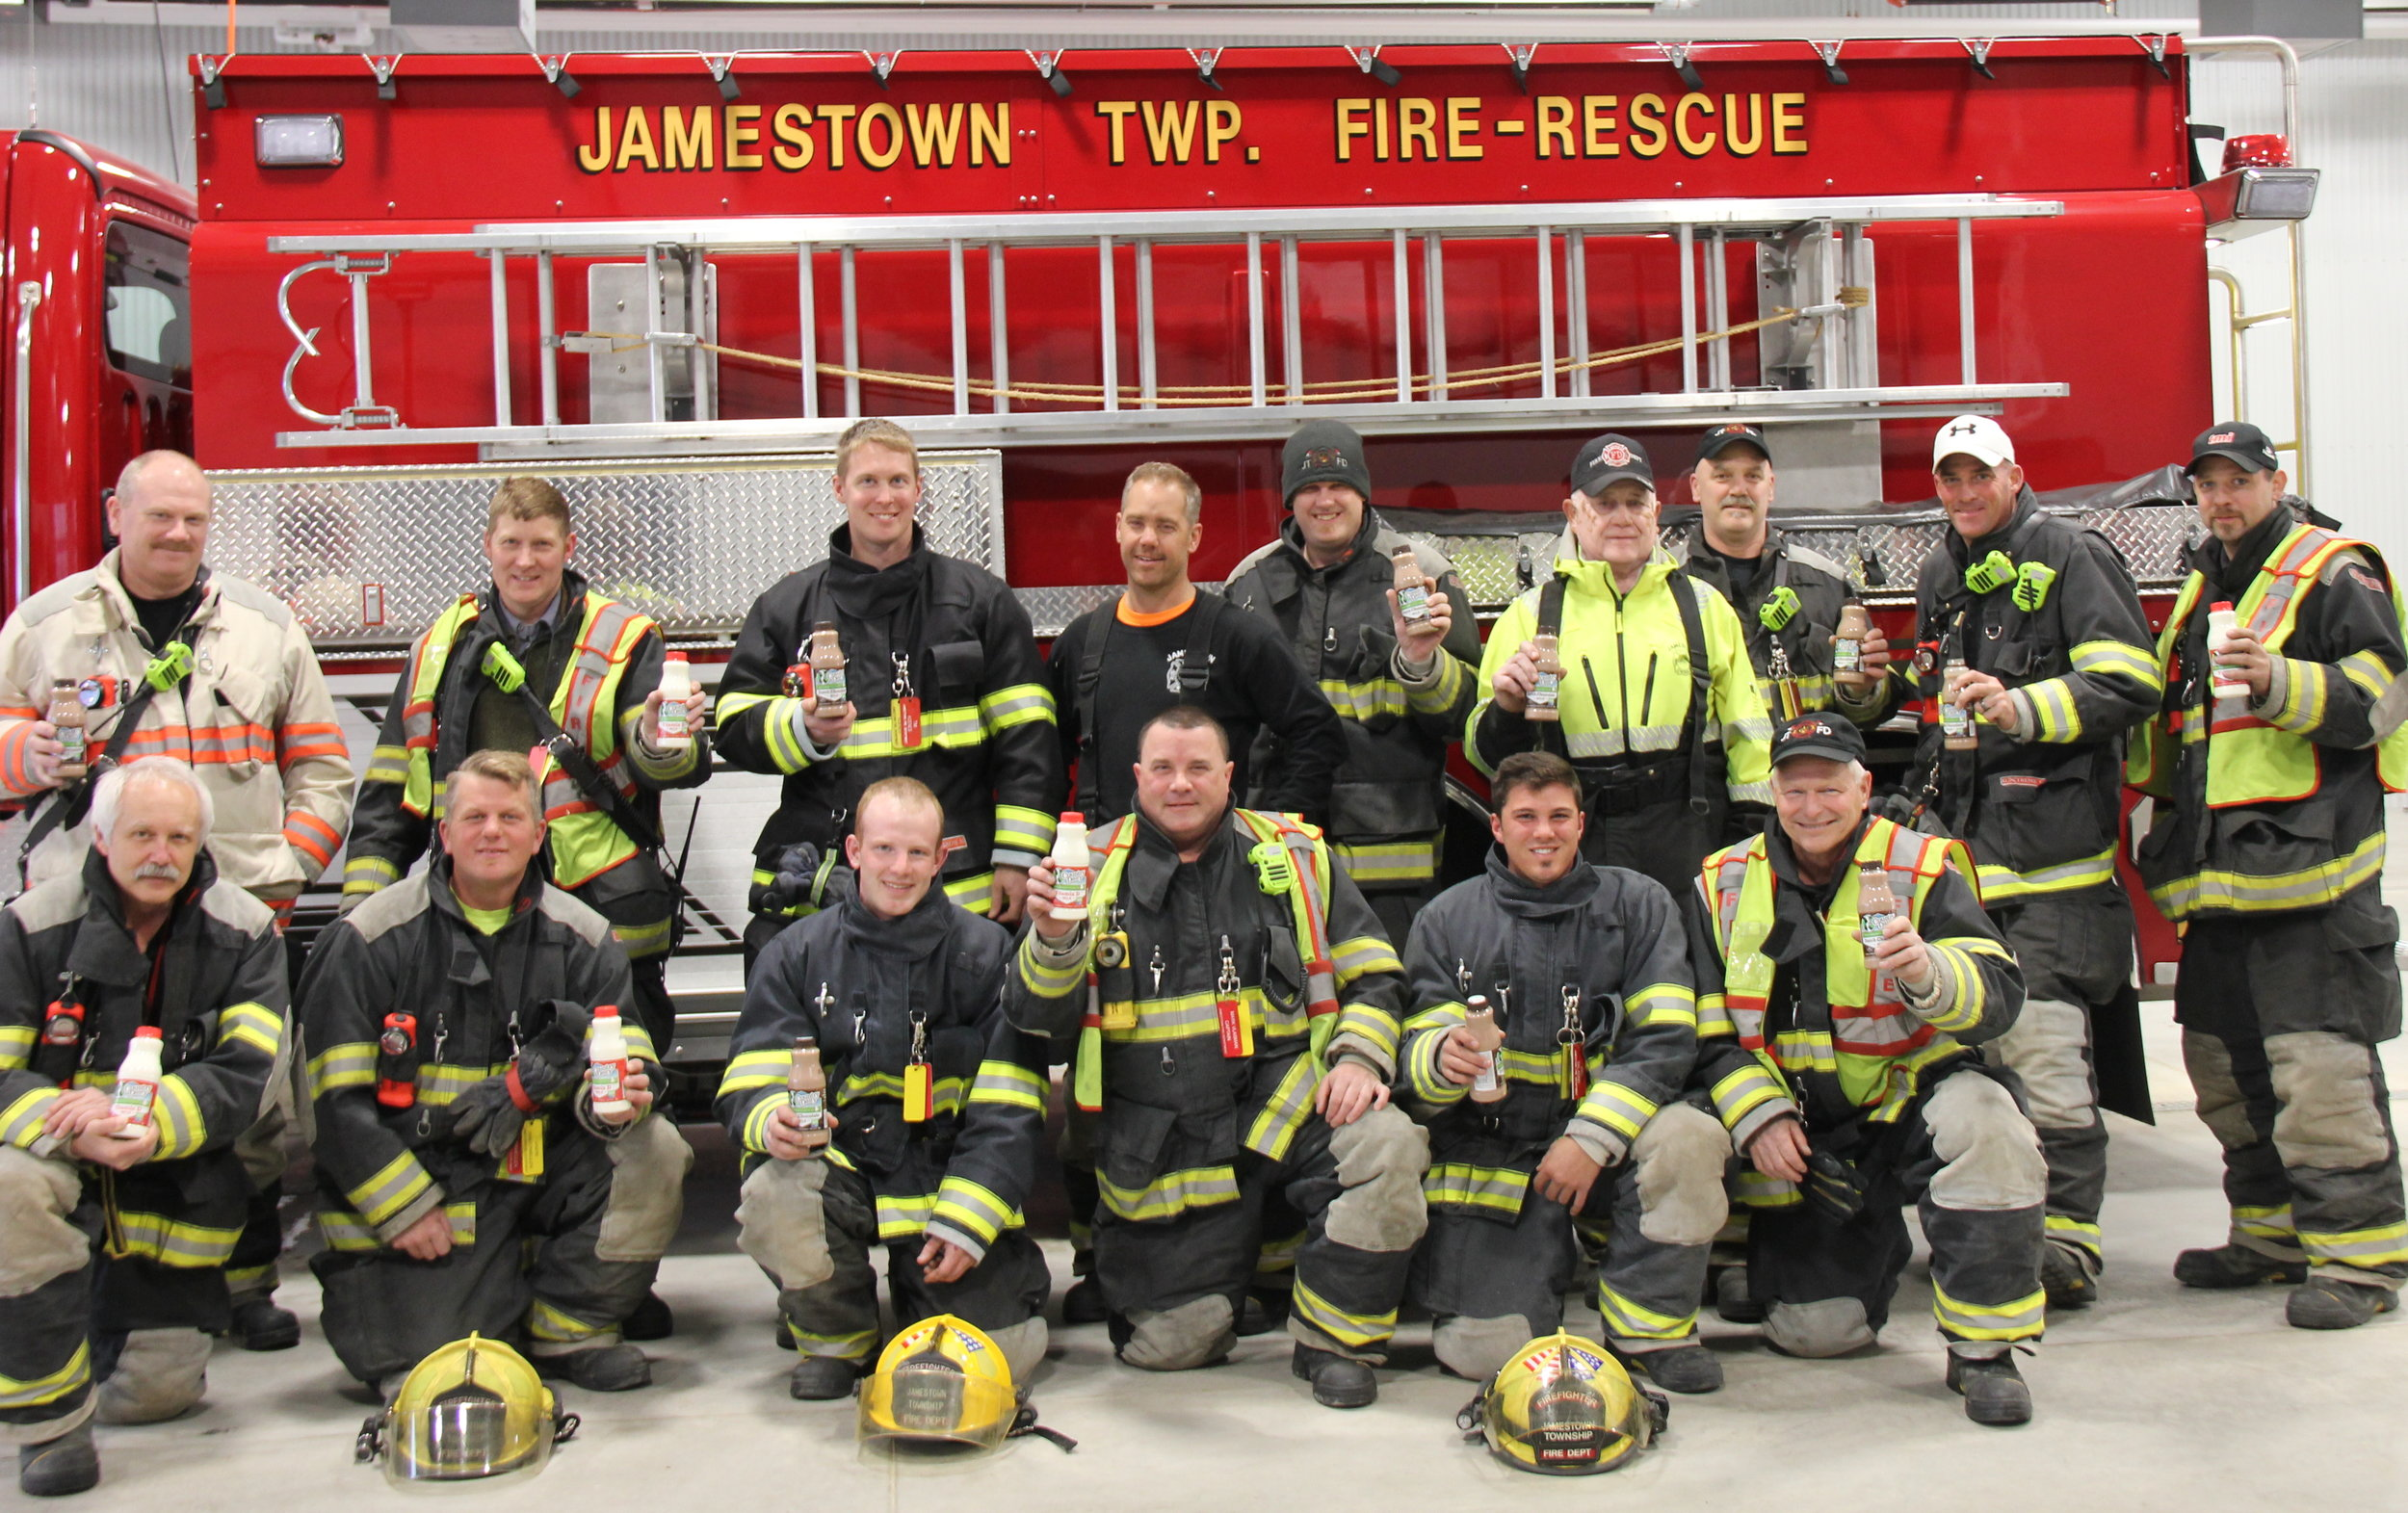 Jamestown Fire.jpg